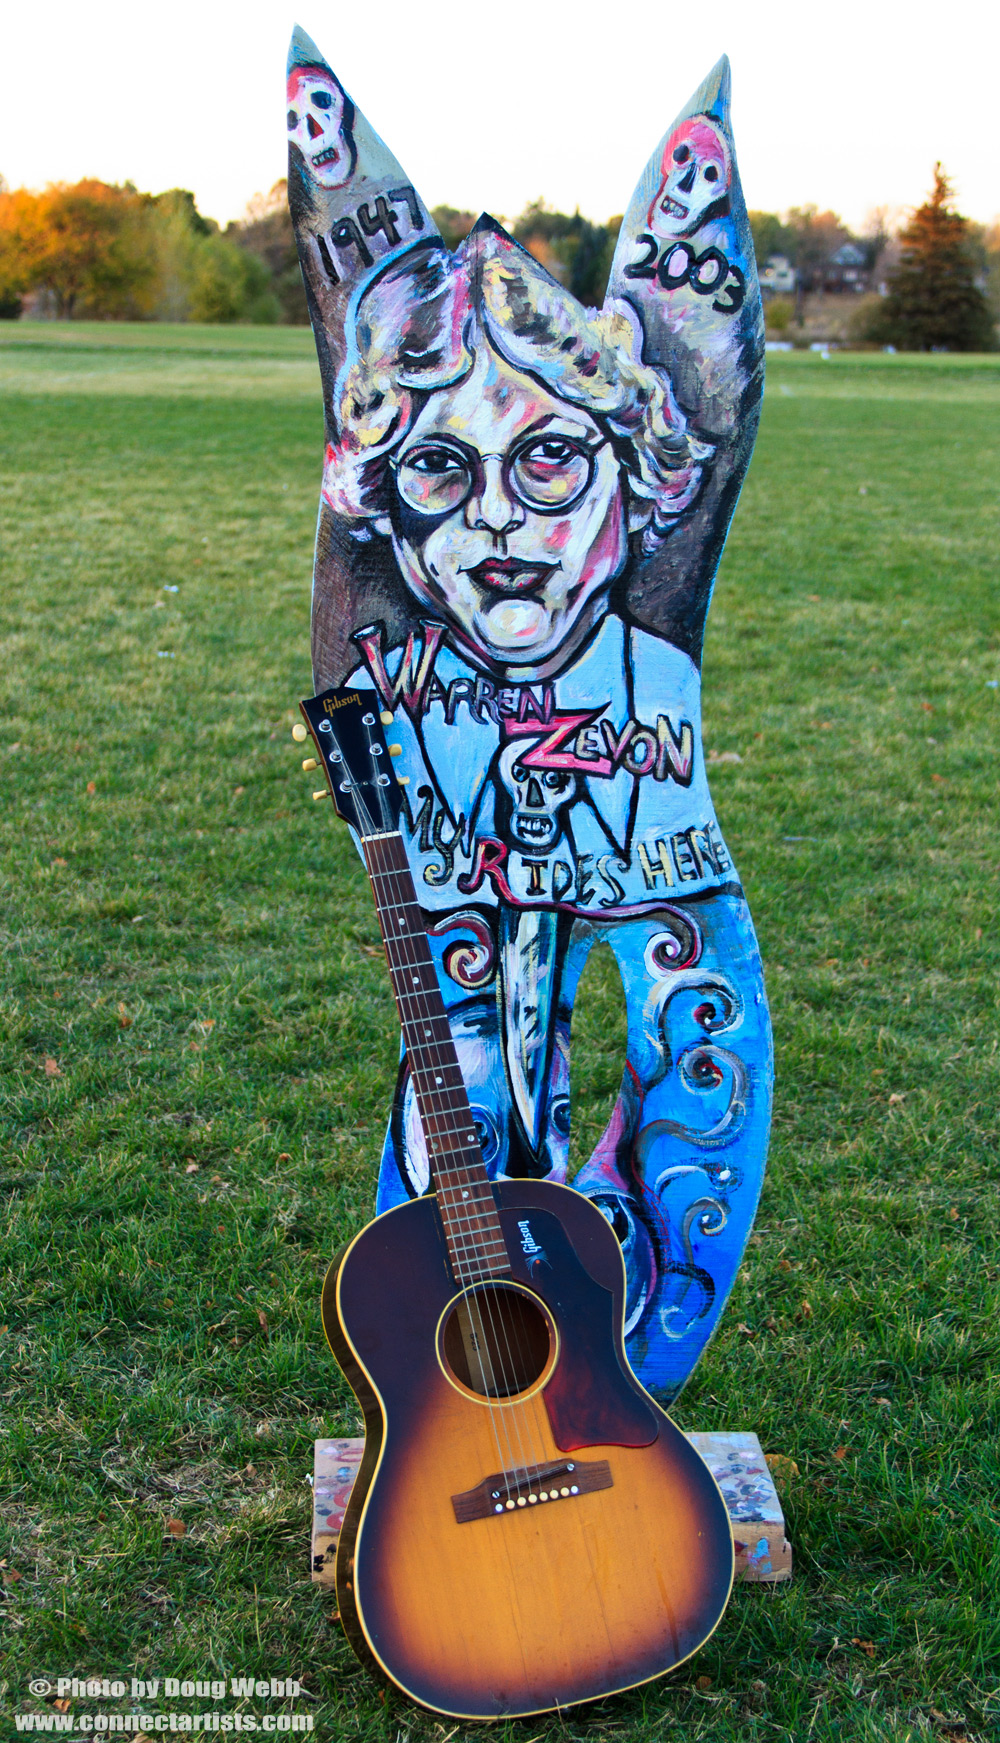 1968 Gibson B-25 Sunburst Acoustic Guitar / Warren Zevon Wood Carved Sculpture by Ross Olsen / Acrylic Painting by Gretchen Seichrist